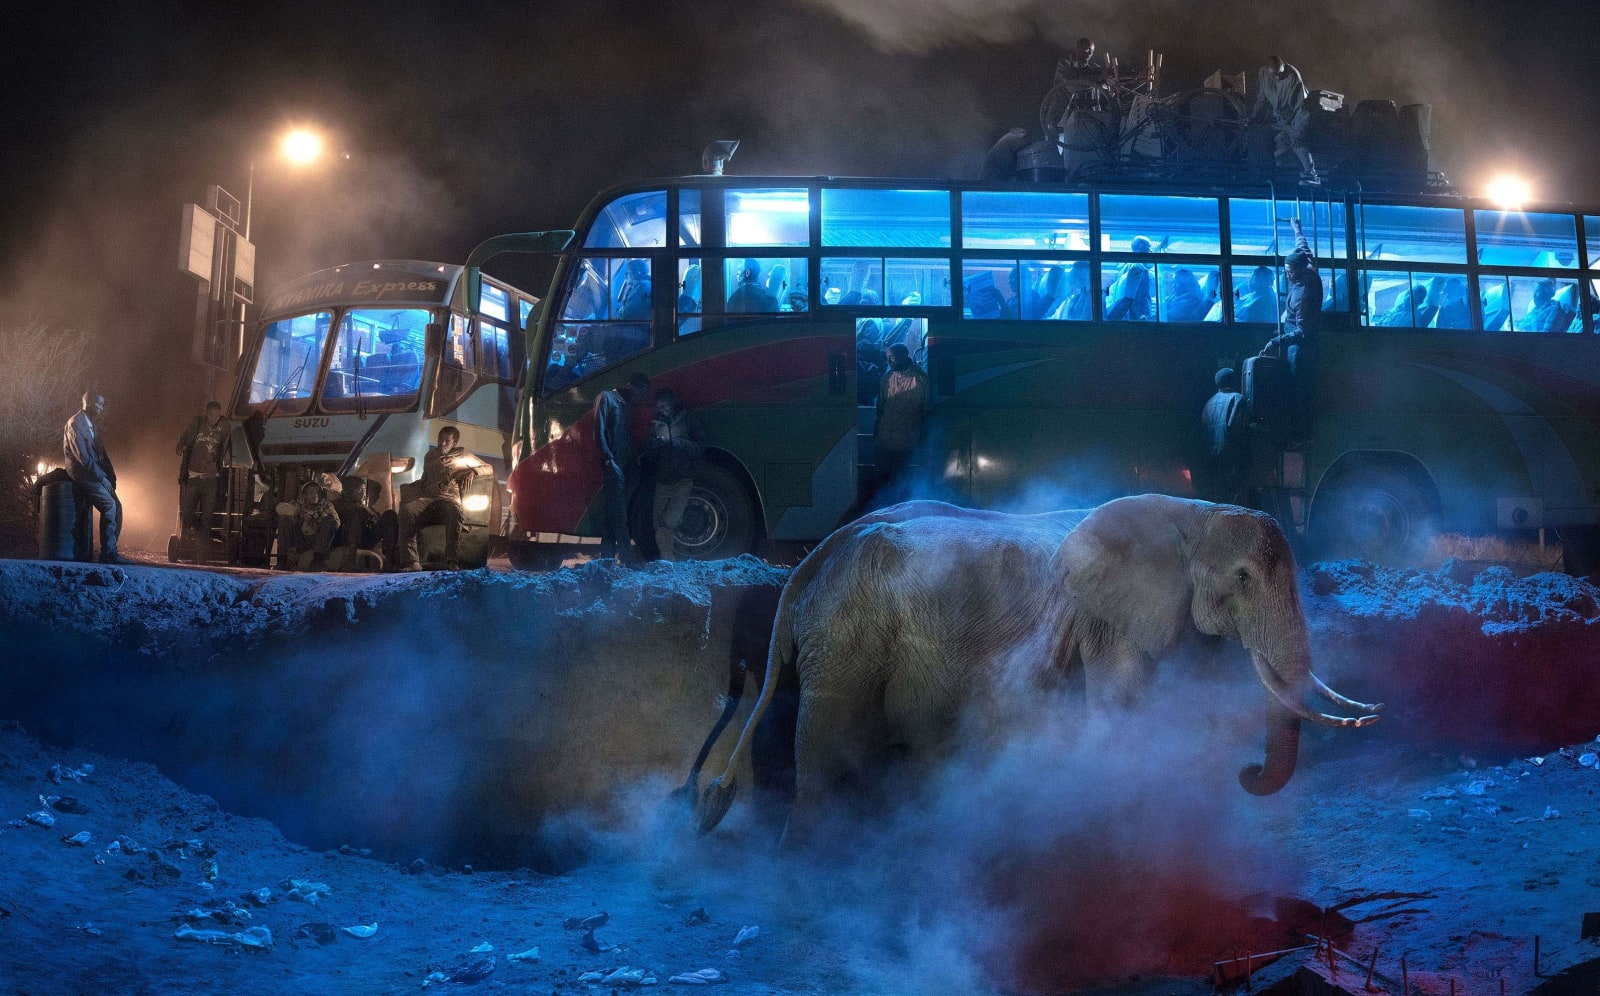 Nick Brandt, Bus Station With Elephant in Dust, 2018